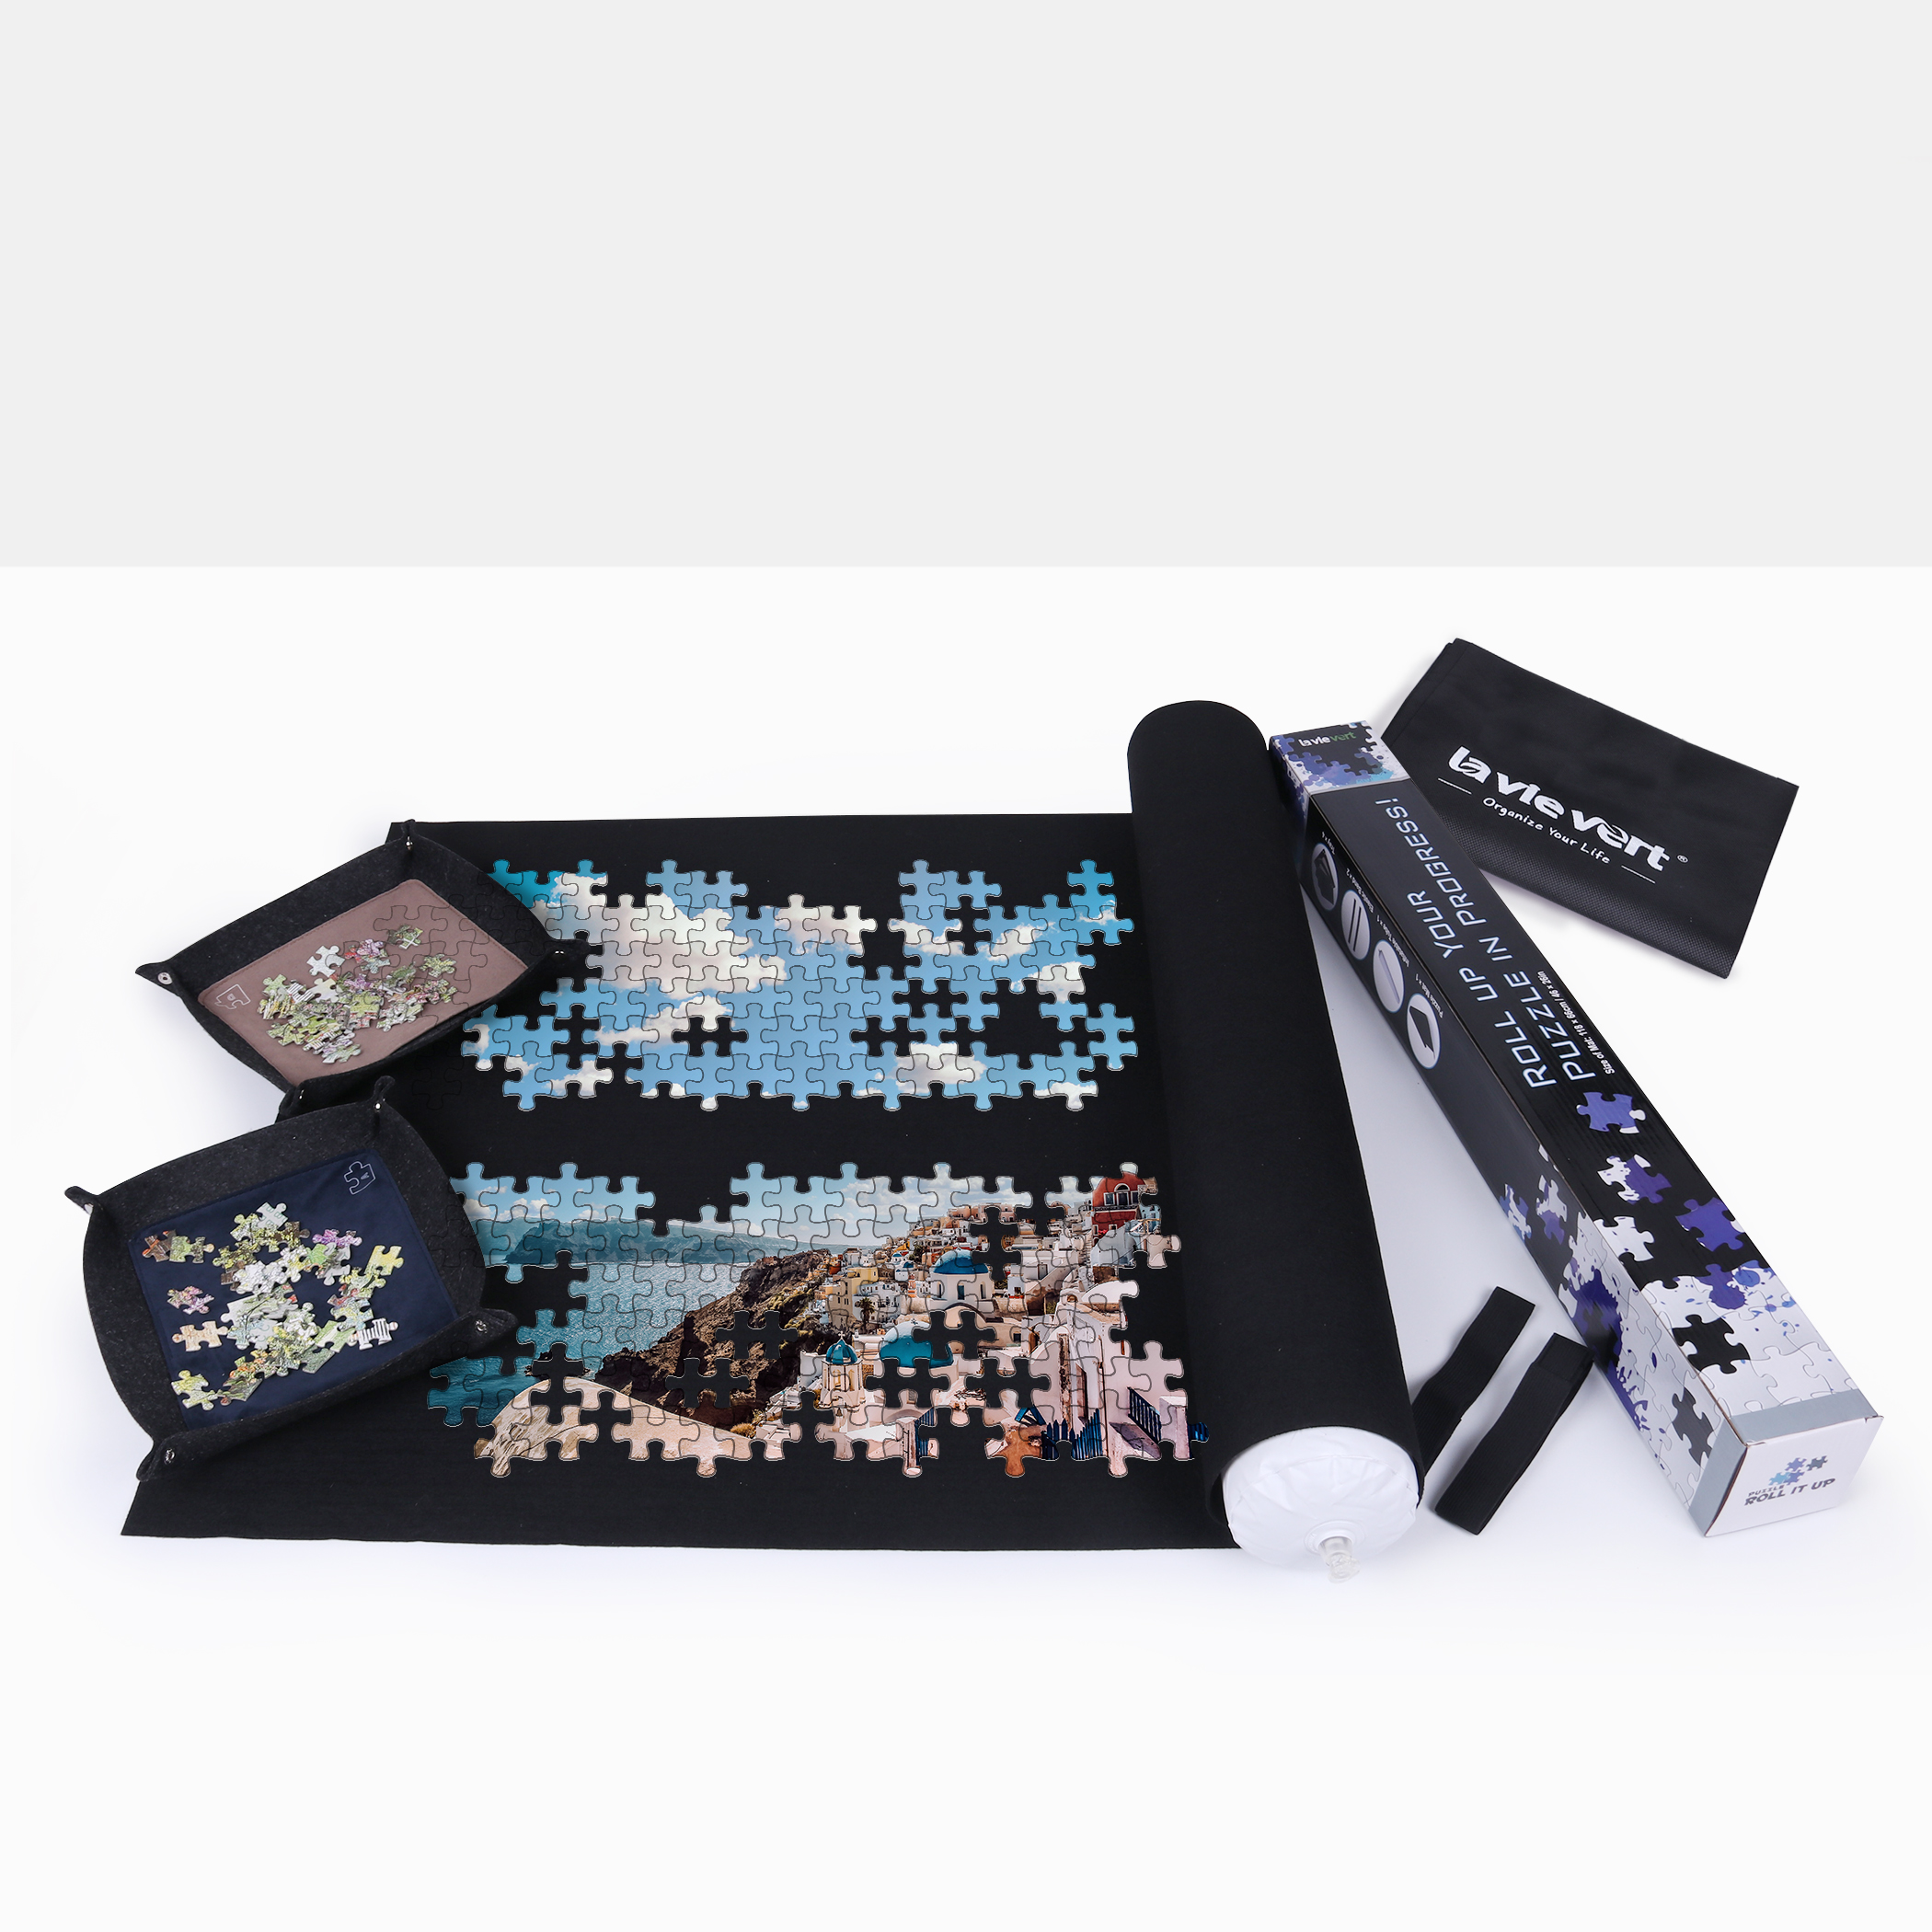 Lavievert Jigsaw Puzzle Roll Mat Comes with A Storage Bag & 4 Sorting Trays by Lavievert